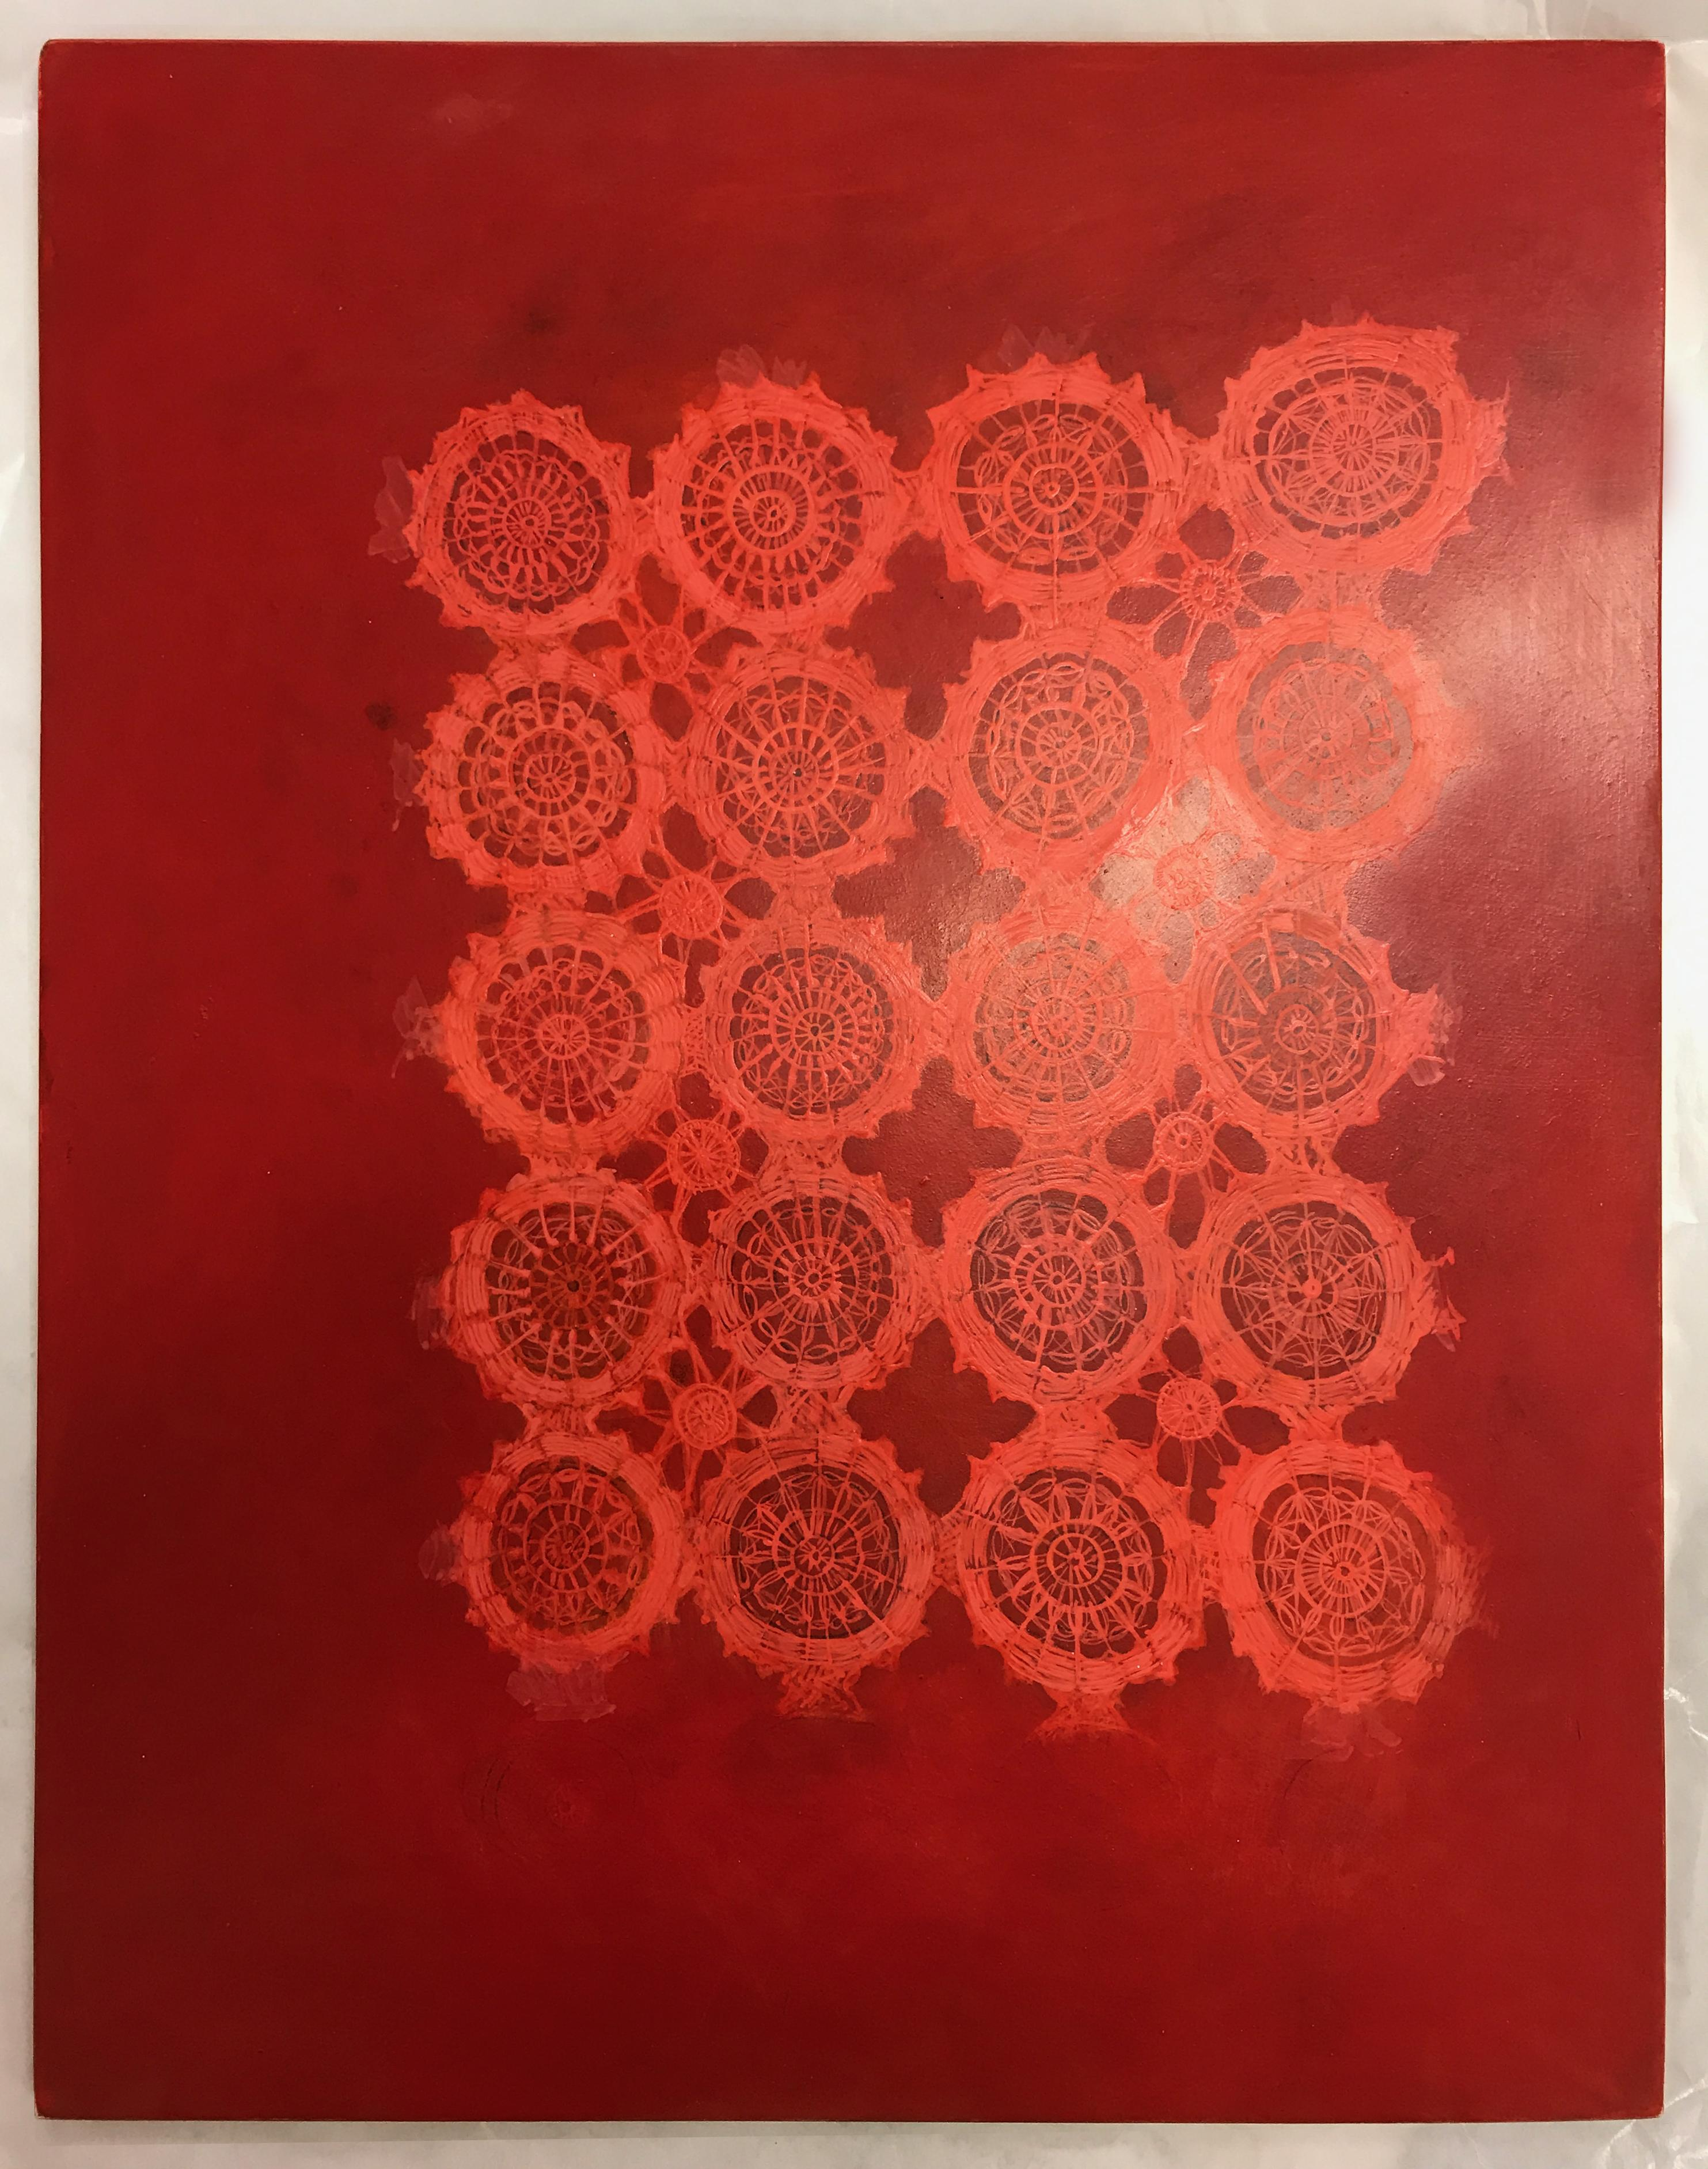 Patricia Miranda, Seeing Red Lace, 2020, egg tempera on panel